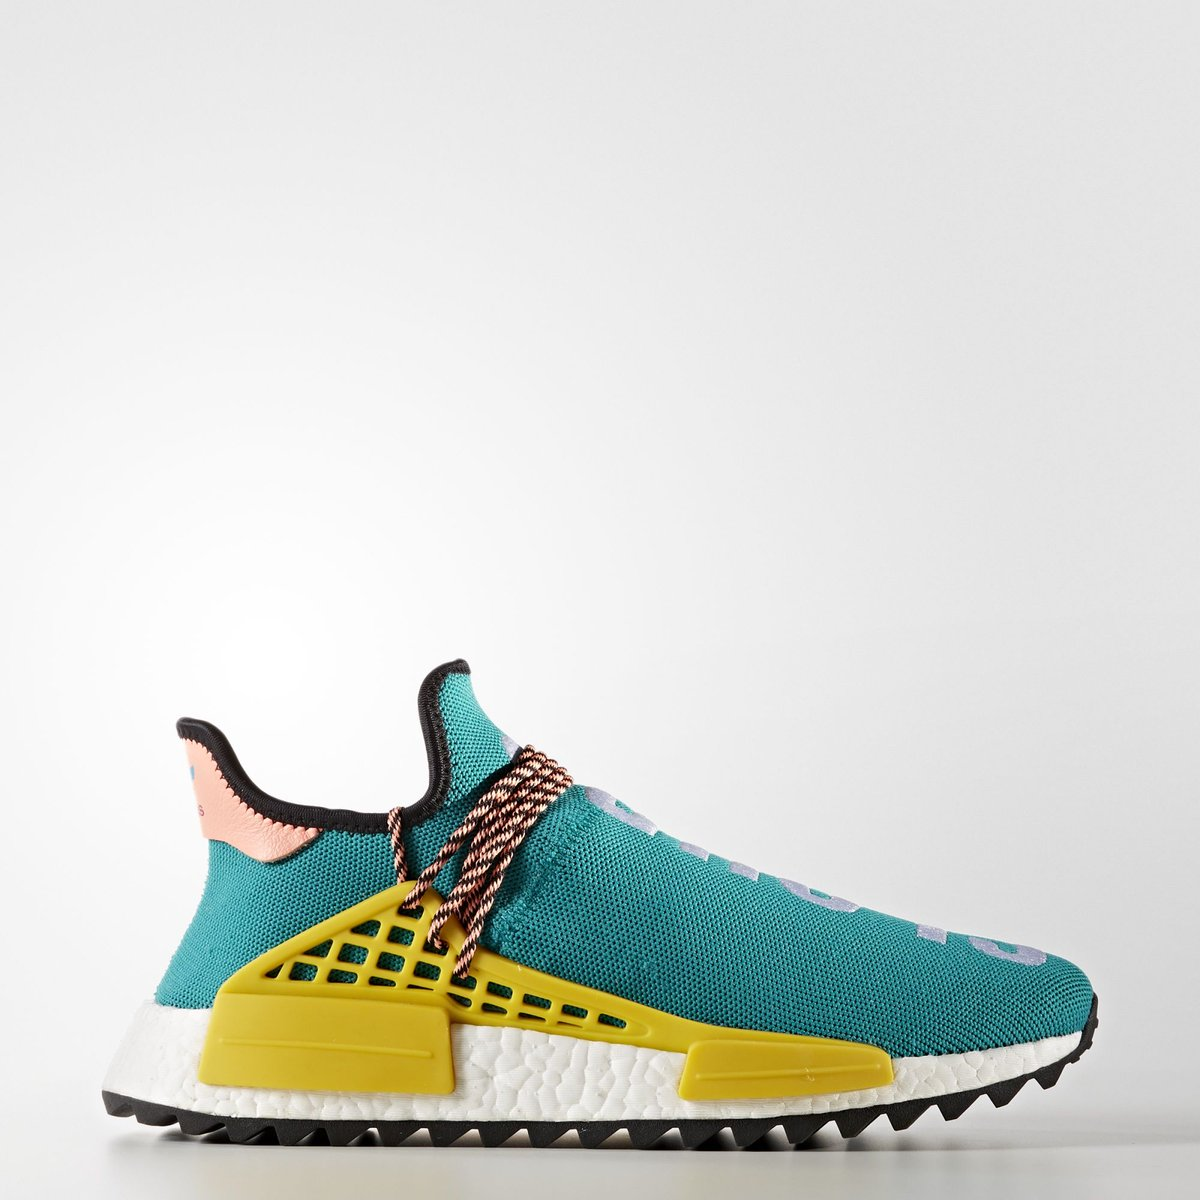 adidas Originals X PHARRELL WILLIAMS Adidas originals X Farrell Williams PW HUMAN RACE NMD TR human race N M D sun glow S16 core black